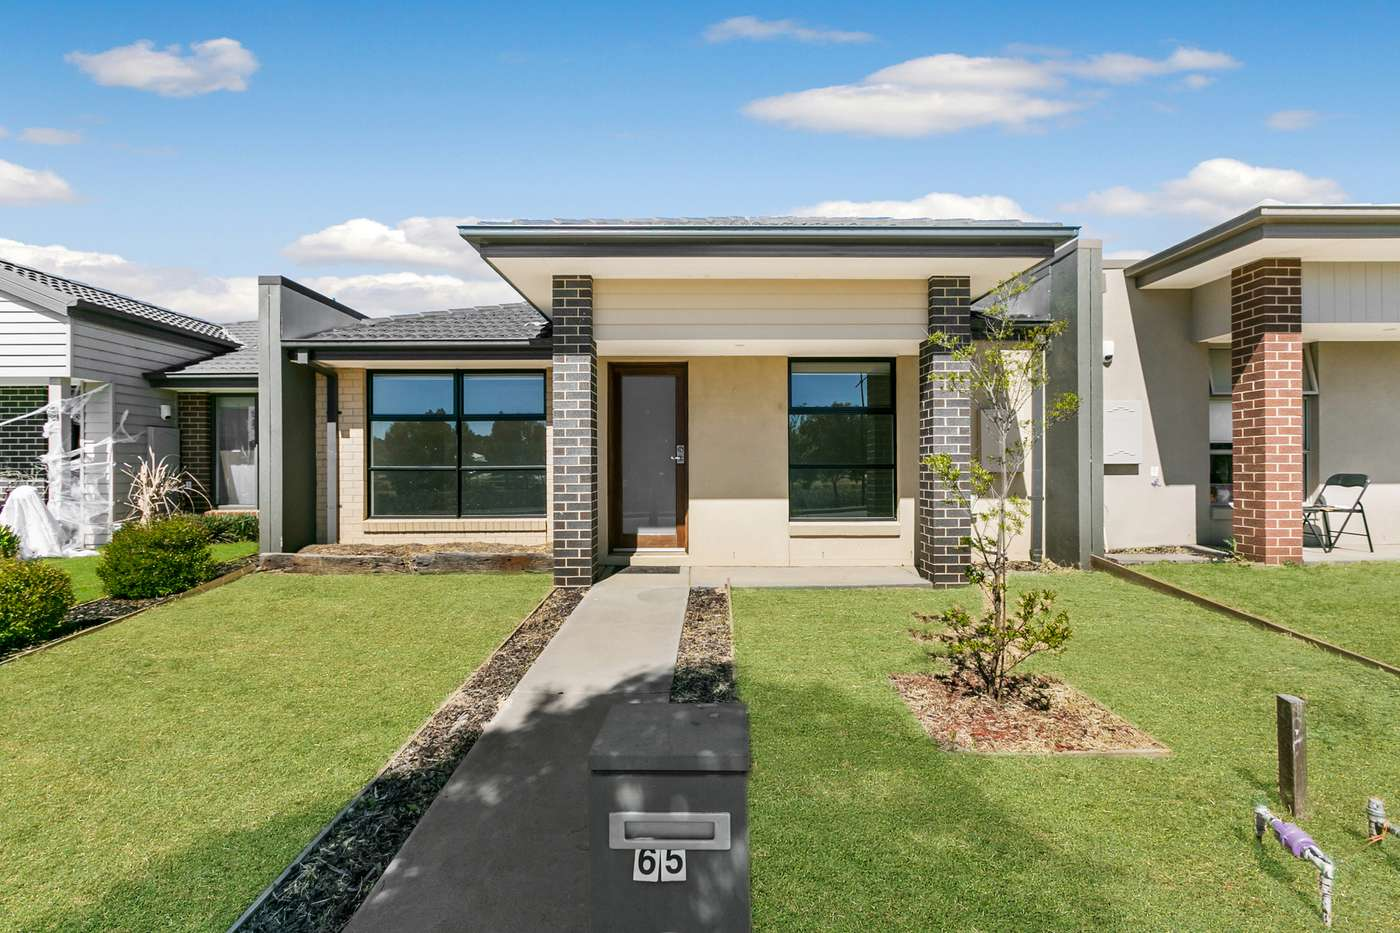 Main view of Homely house listing, 65 (Lot 50 Evergreen Boulevard, Jackass Flat, VIC 3556